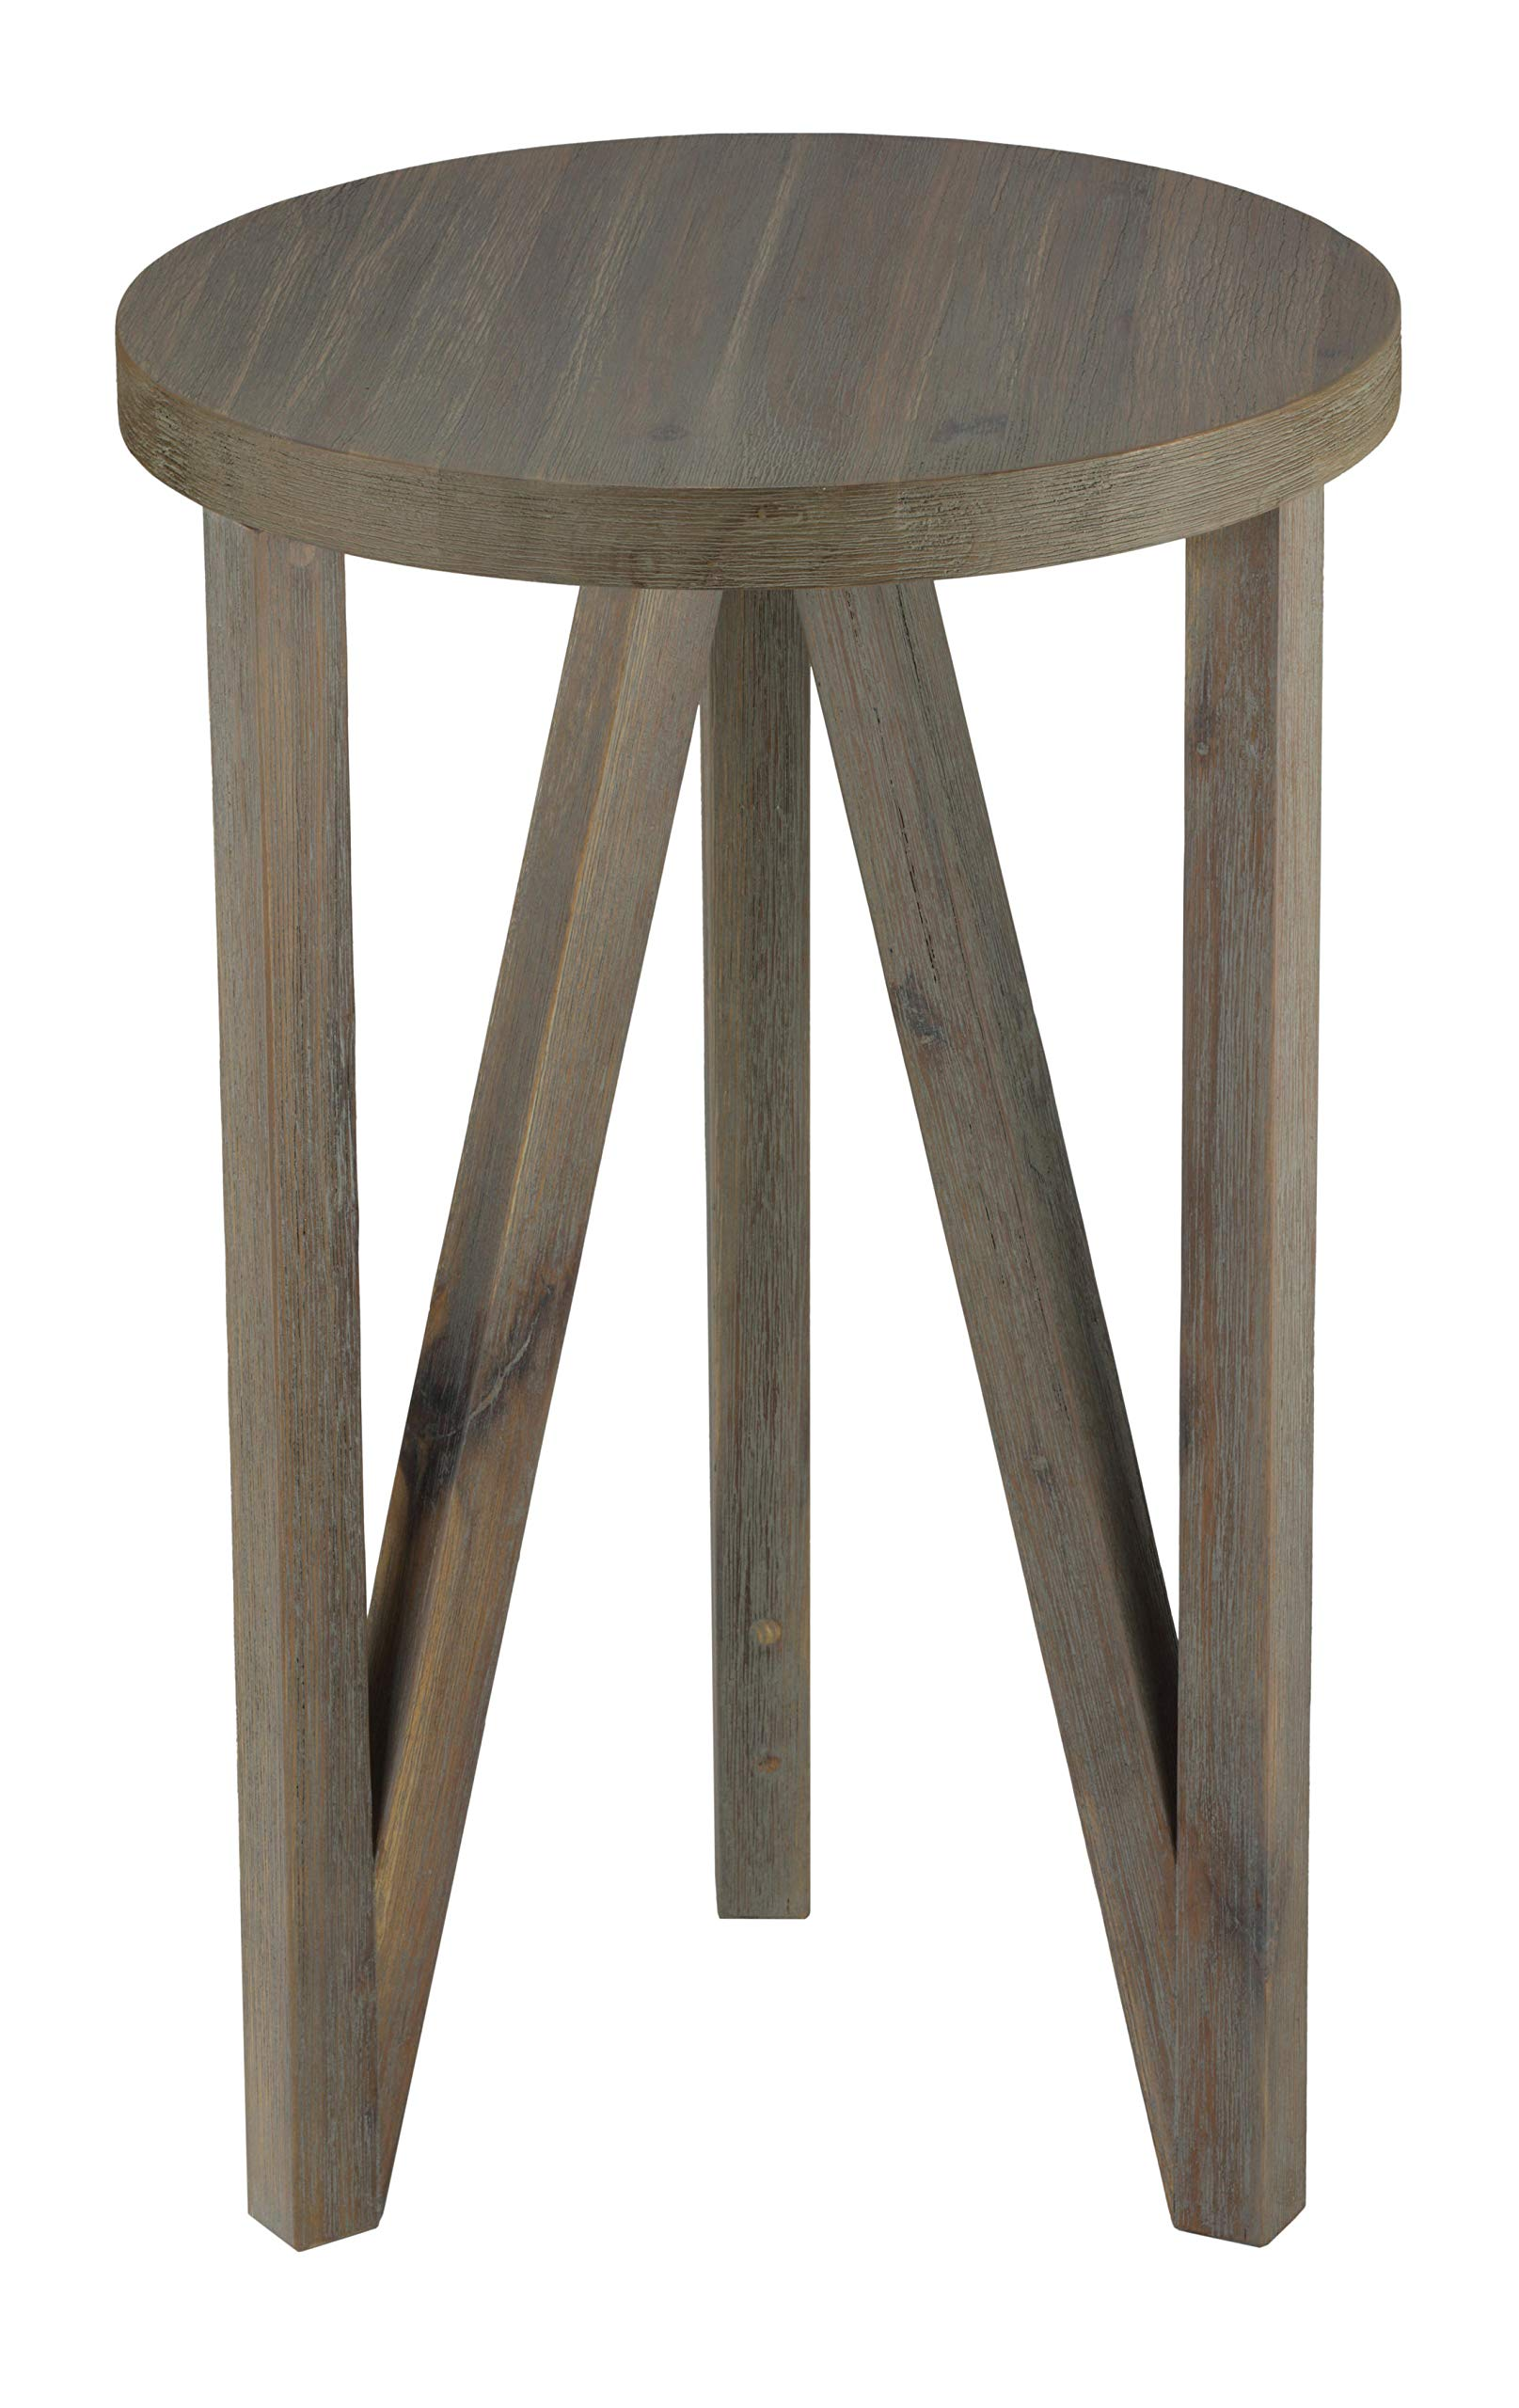 Cortesi Home Tobin End Table in Solid Wood by Cortesi Home